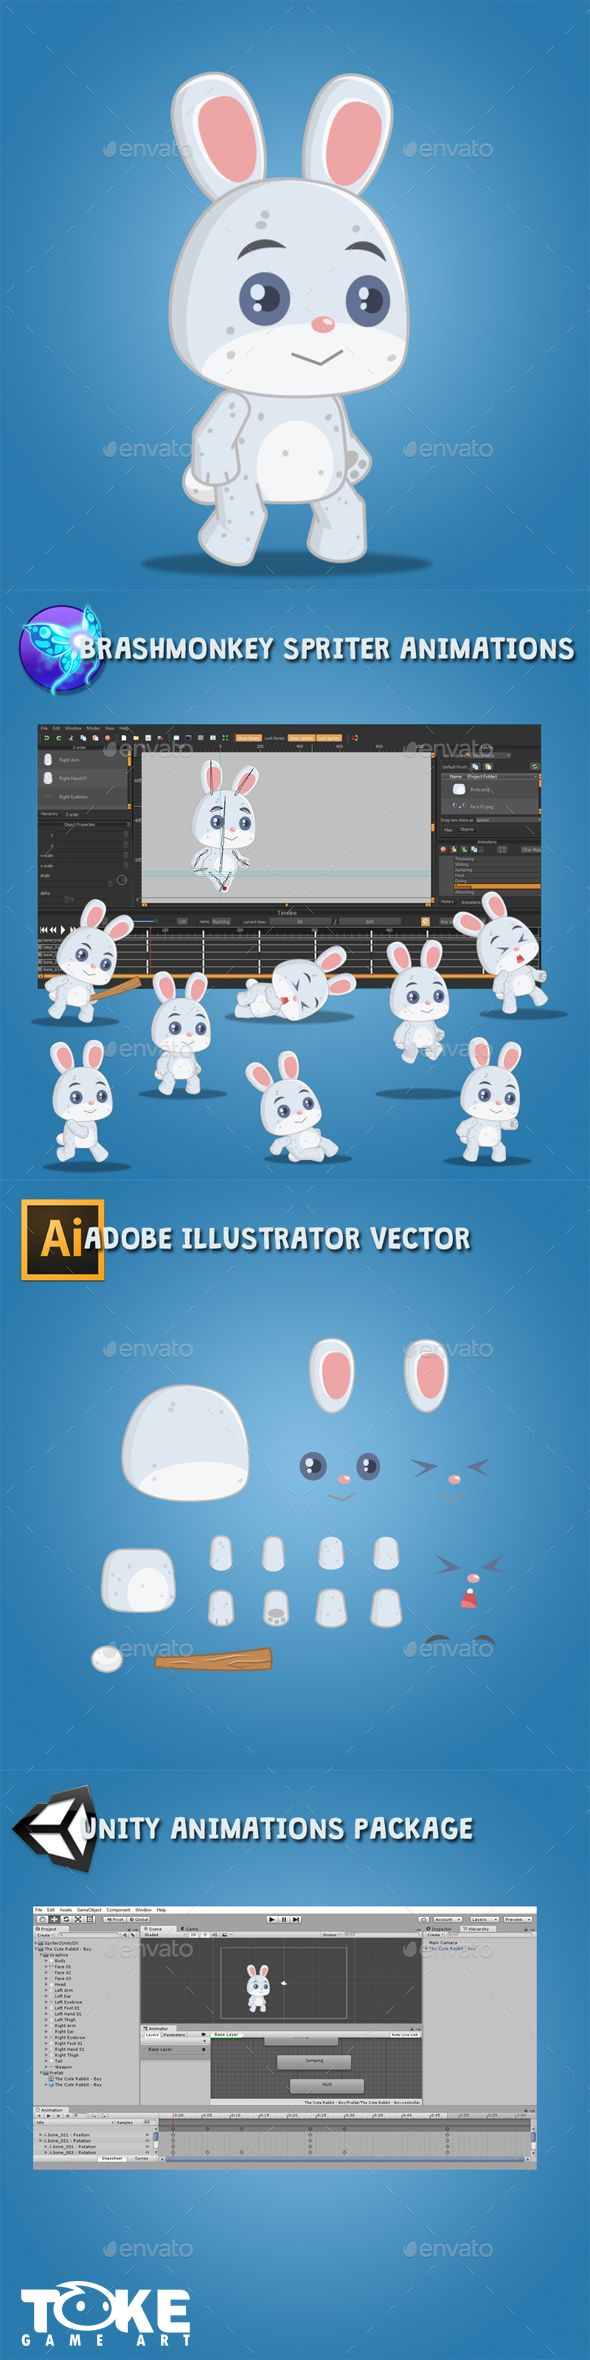 Pin by Elaine Yii Yih Yie on illustrator | Kids vector